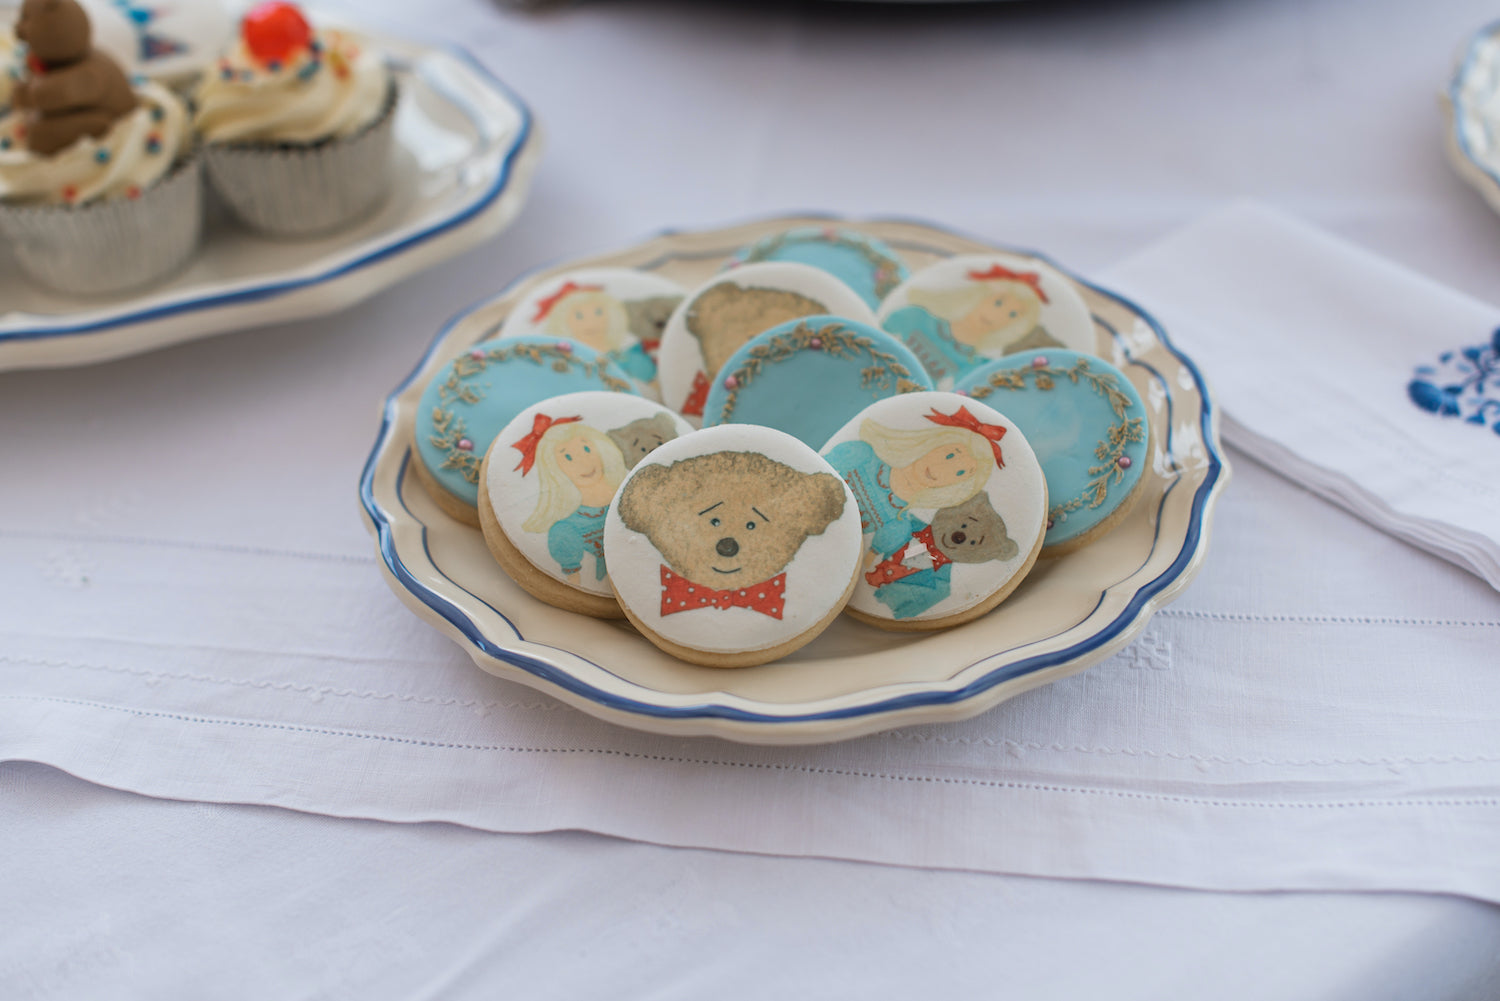 Charlotte and Burlington bear party biscuits